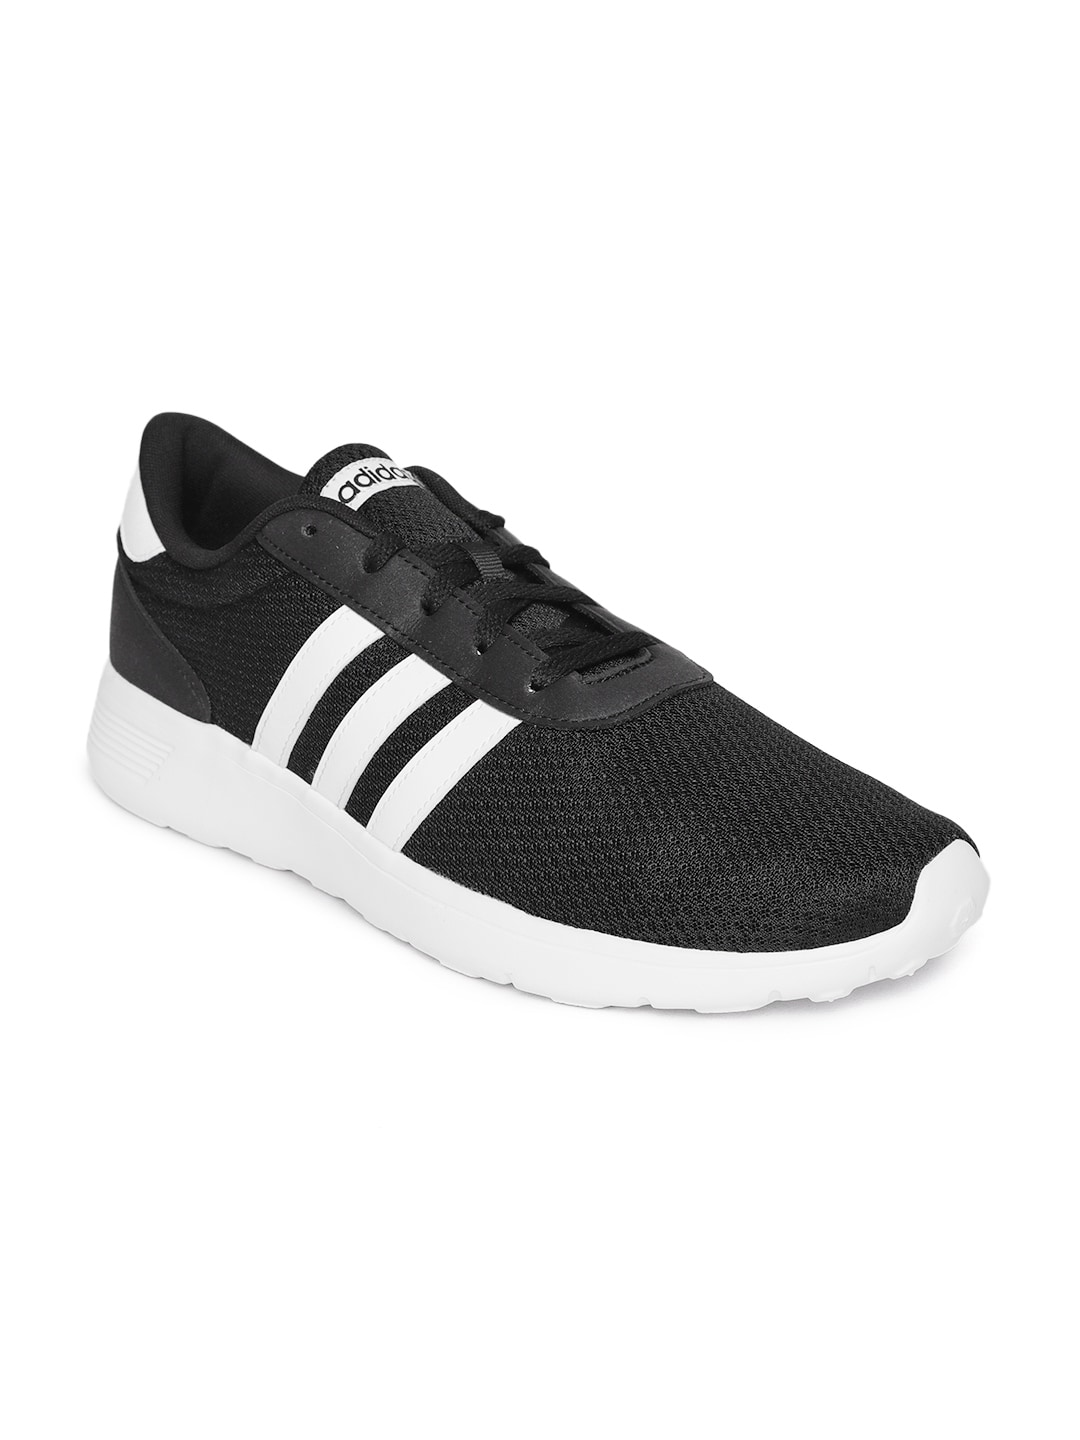 9683be9879 Adidas Shoes Only Sandals - Buy Adidas Shoes Only Sandals online in India